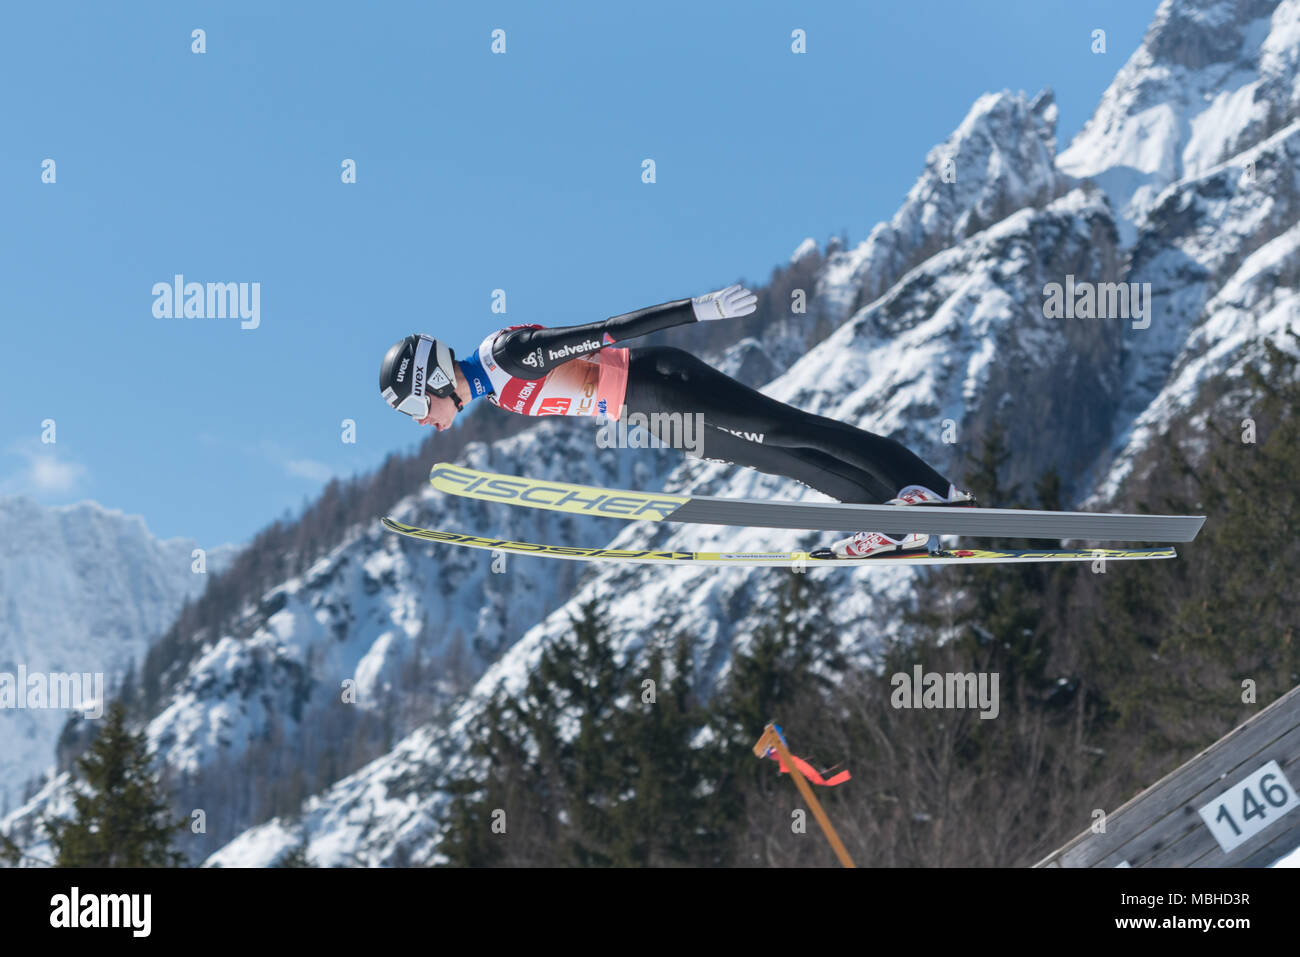 PLANICA, SLOVENIA - MARCH 24 2018 : Fis World Cup Ski Jumping Final - SCHULER Andreas SUI - Stock Image